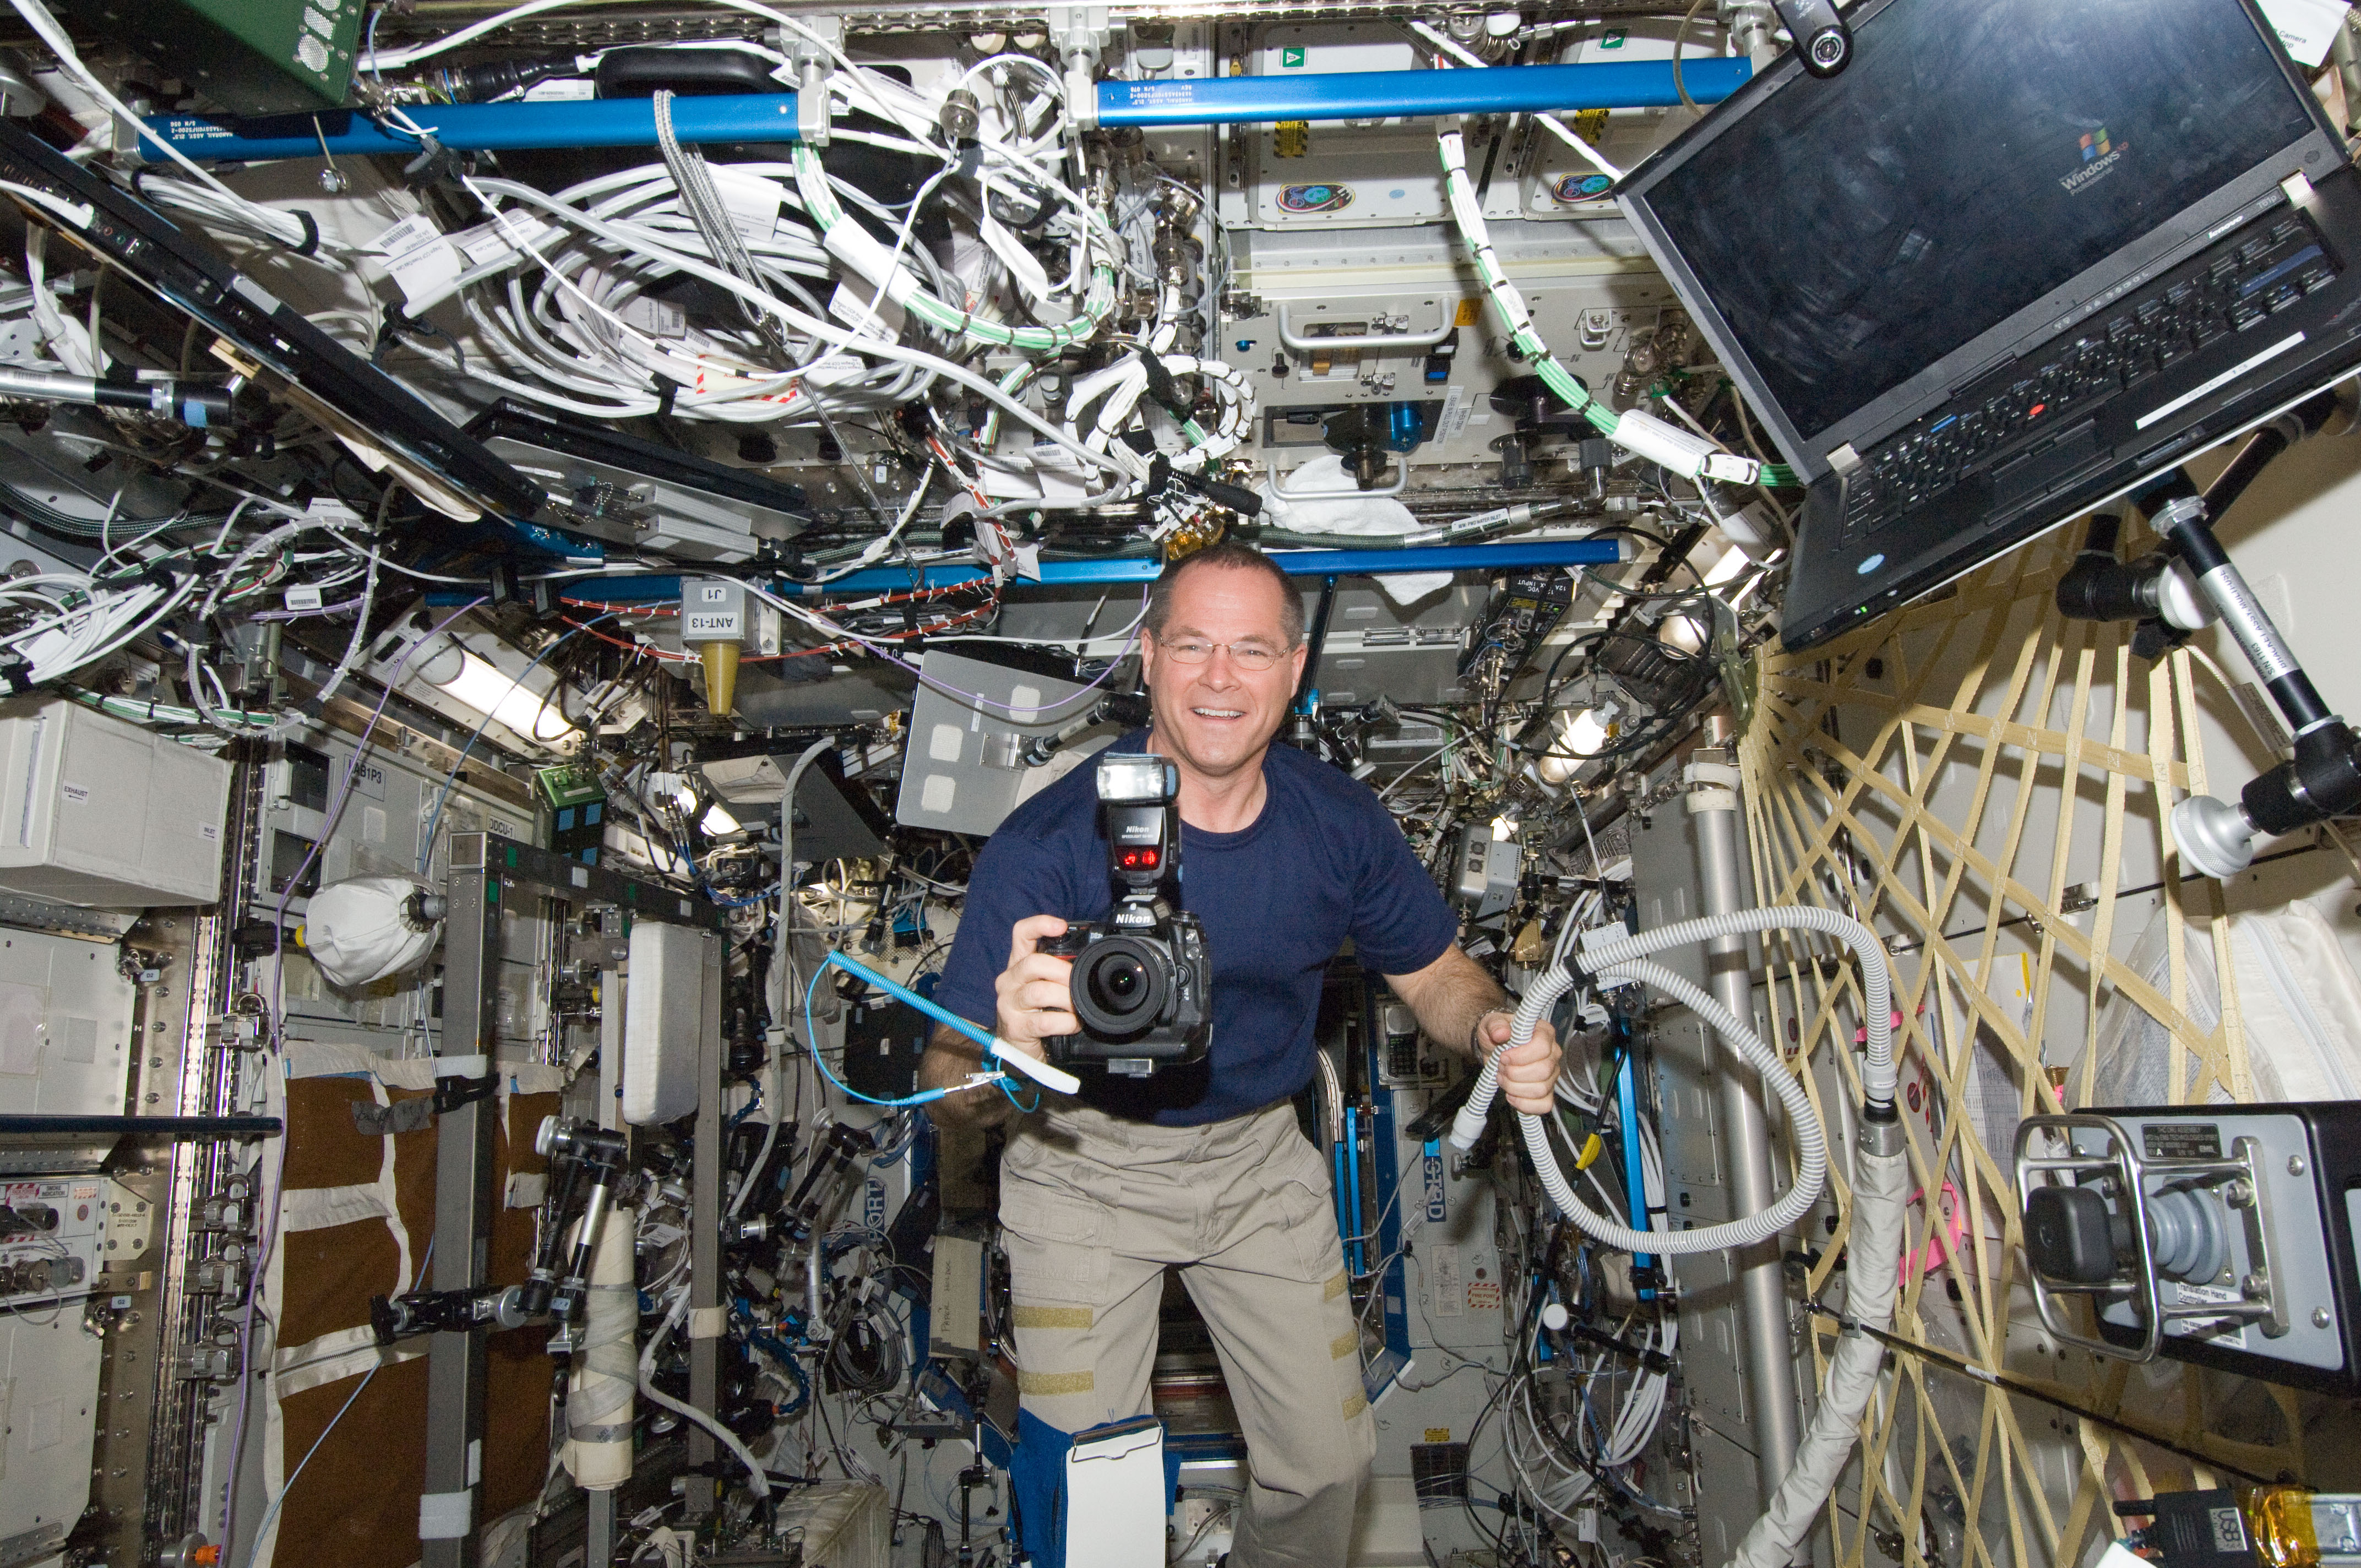 astronaut kevin ford in destiny lab